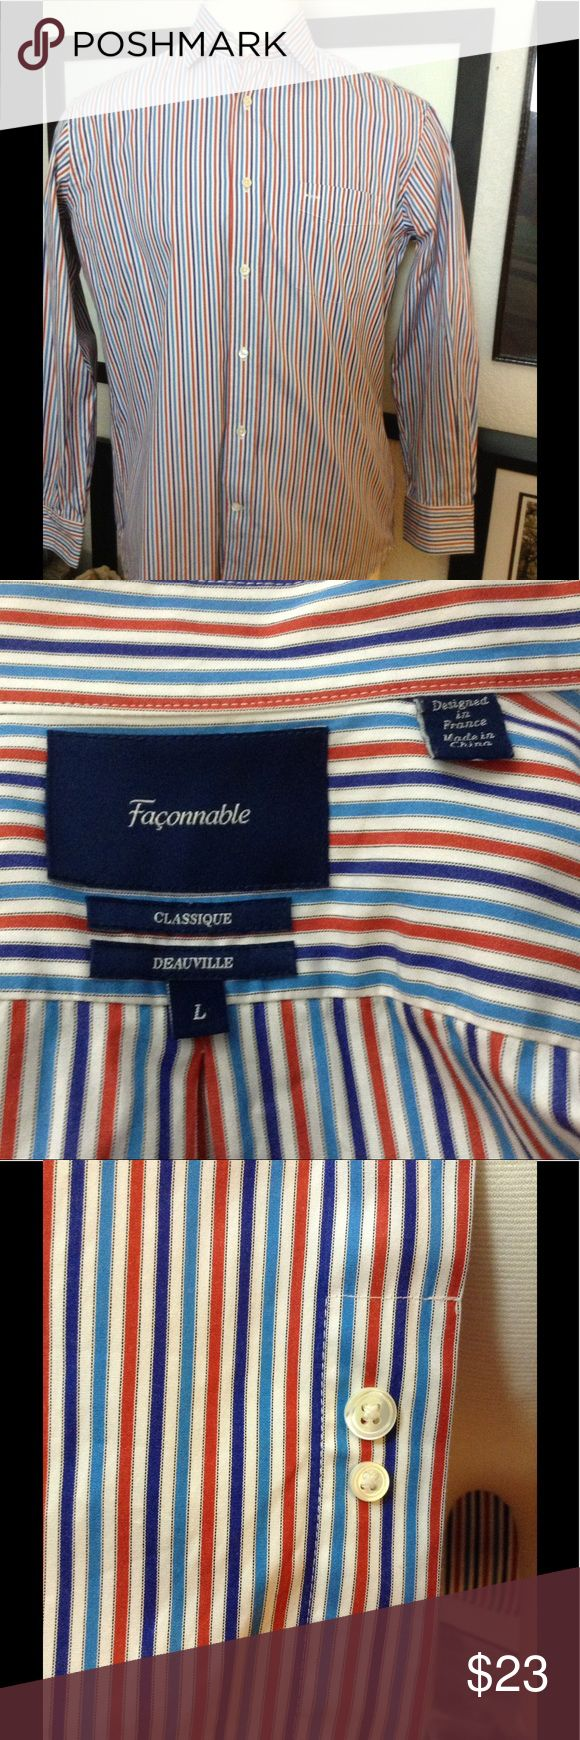 """Faconnable dress shirt Striped red, blue, white, Spread collar, long sleeve with button cuffs, classic fit, cotton, measures: 24""""across front chest seam to seam, 25"""" sleeve length, 31"""" length shoulder to hem Faconnable Shirts Dress Shirts"""